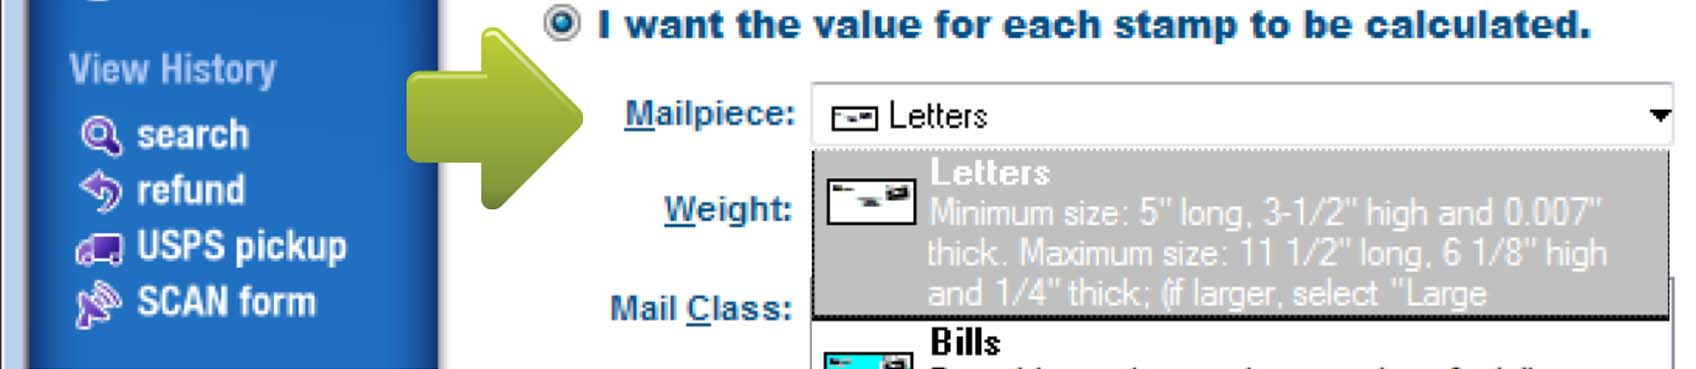 Stamps Automatically Sets The Weight At 1 Ounce Which Is About Equal To A Letter With 5 Pages If You Think Your Envelope May Weigh More Than One